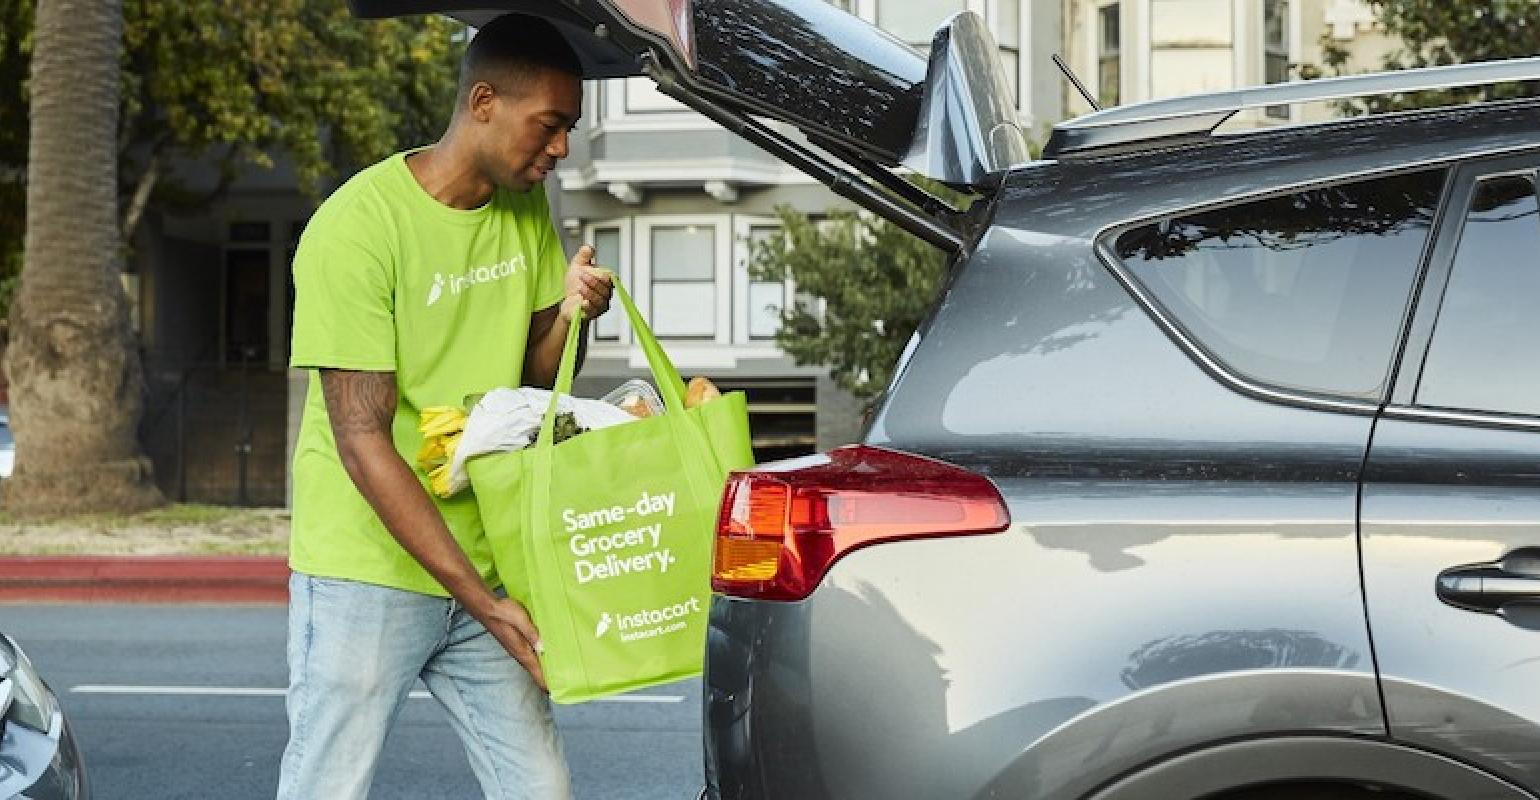 Instacart personal shopper-loading car.jpg